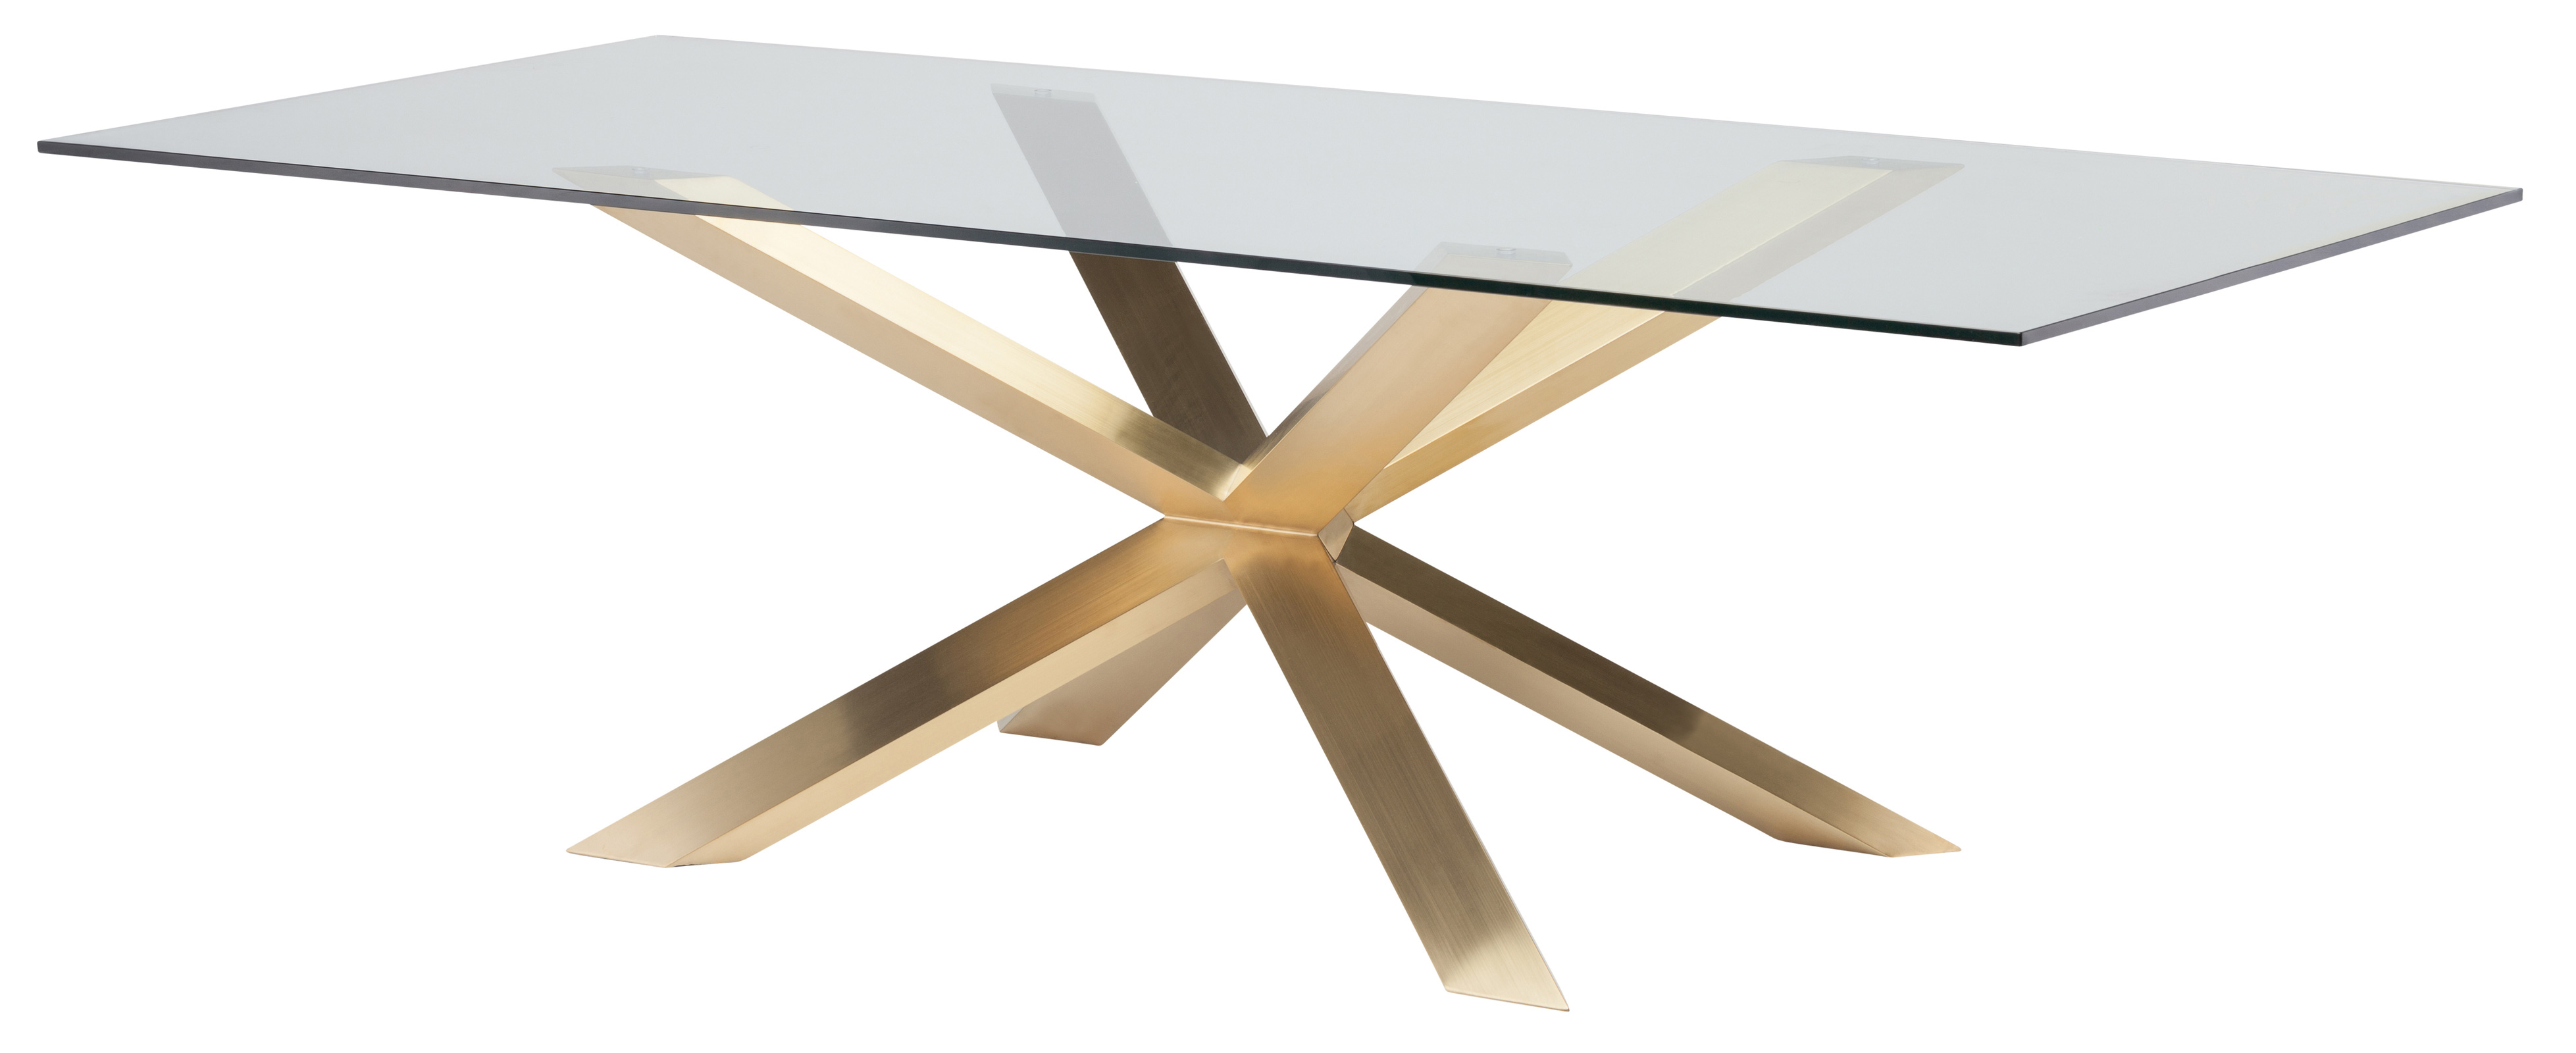 the super best glass dining table gold base irishdiaspora homepop metal accent triangle round top and inch stainless nuevo full size end bouncy castle hire glasgow floor set wood